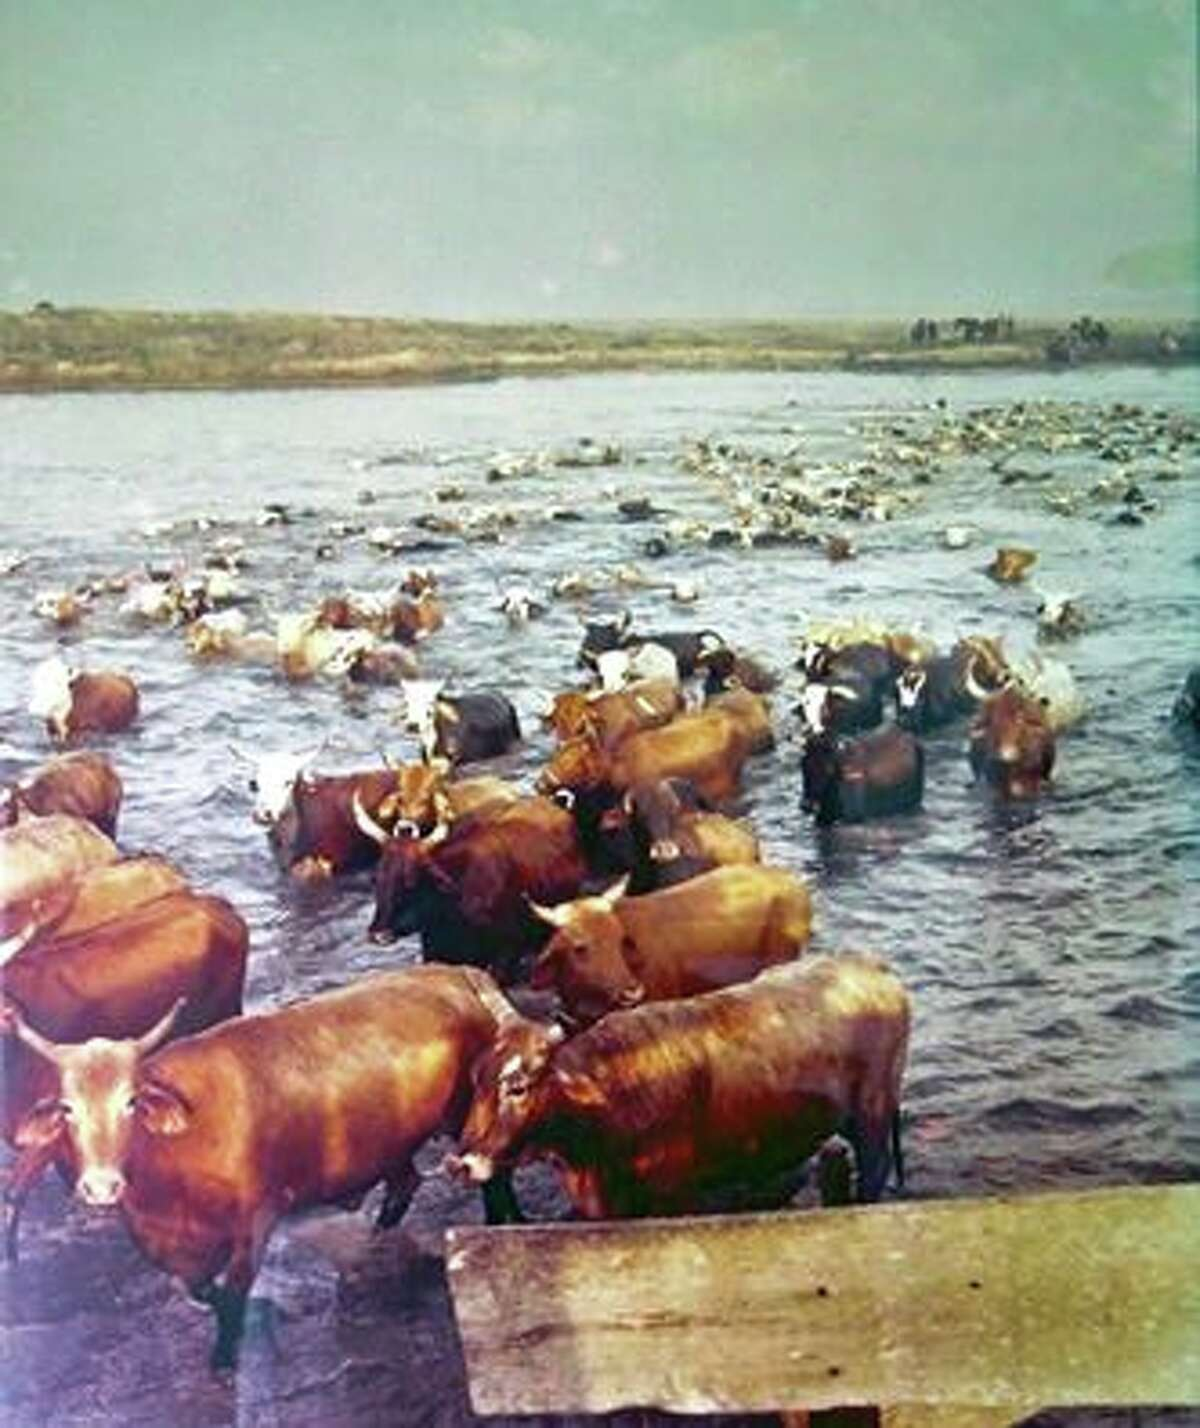 Padre Island National Shoreline shared a Facebook photo revealing a vintage setting of the area, when portions of it were an open cattle range.